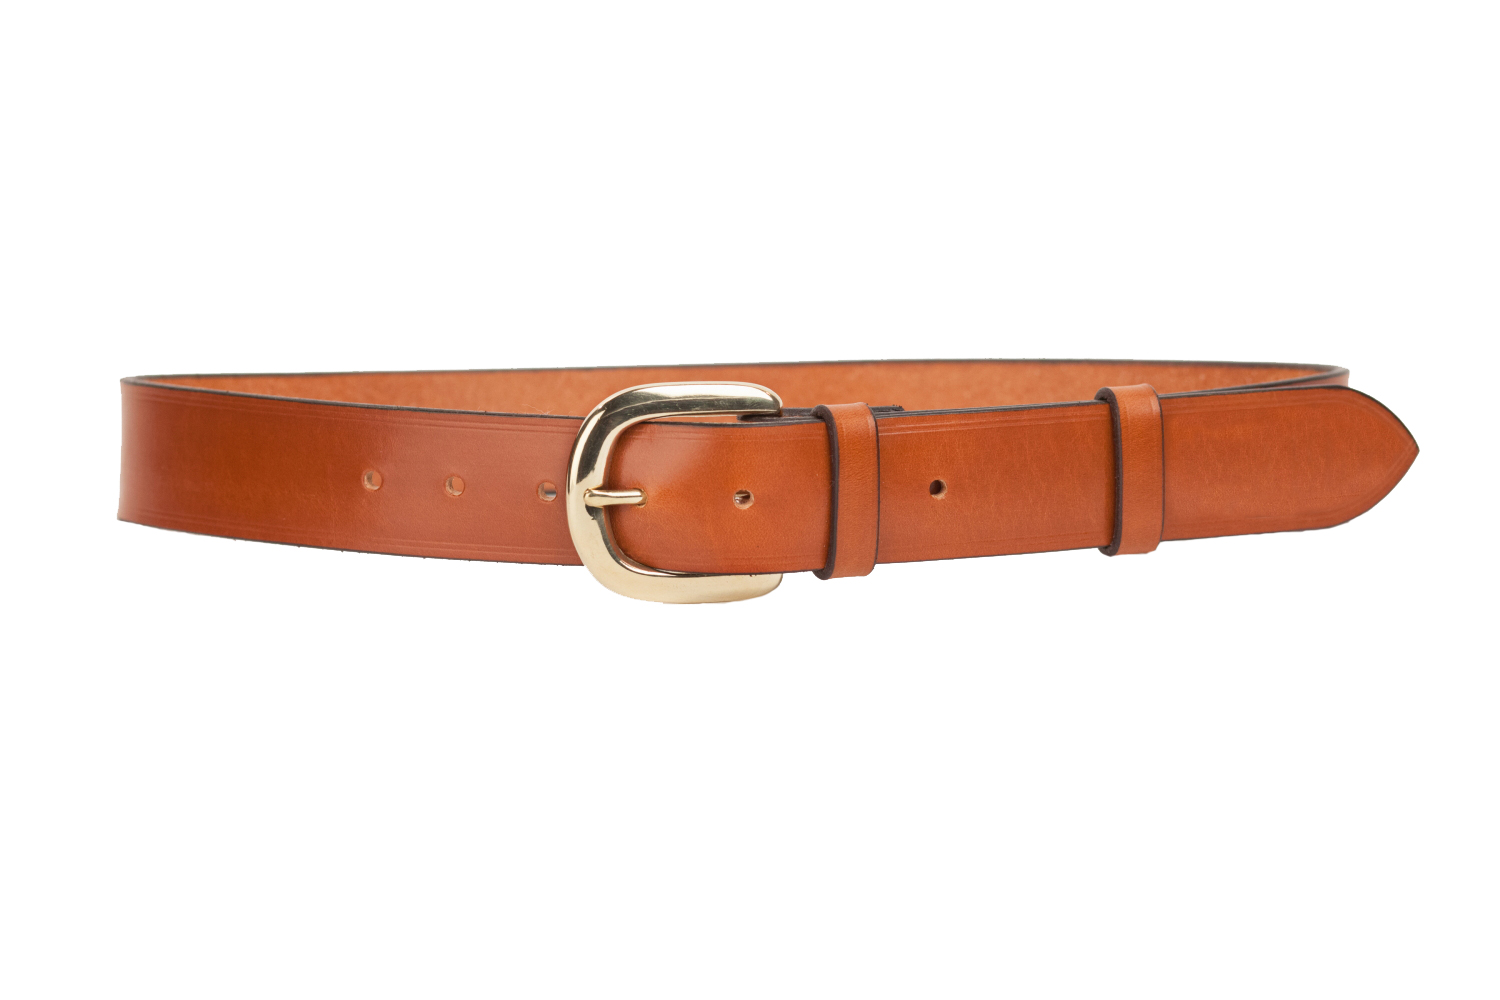 bridle leather belt with 1 5 inch horseshoe buckle